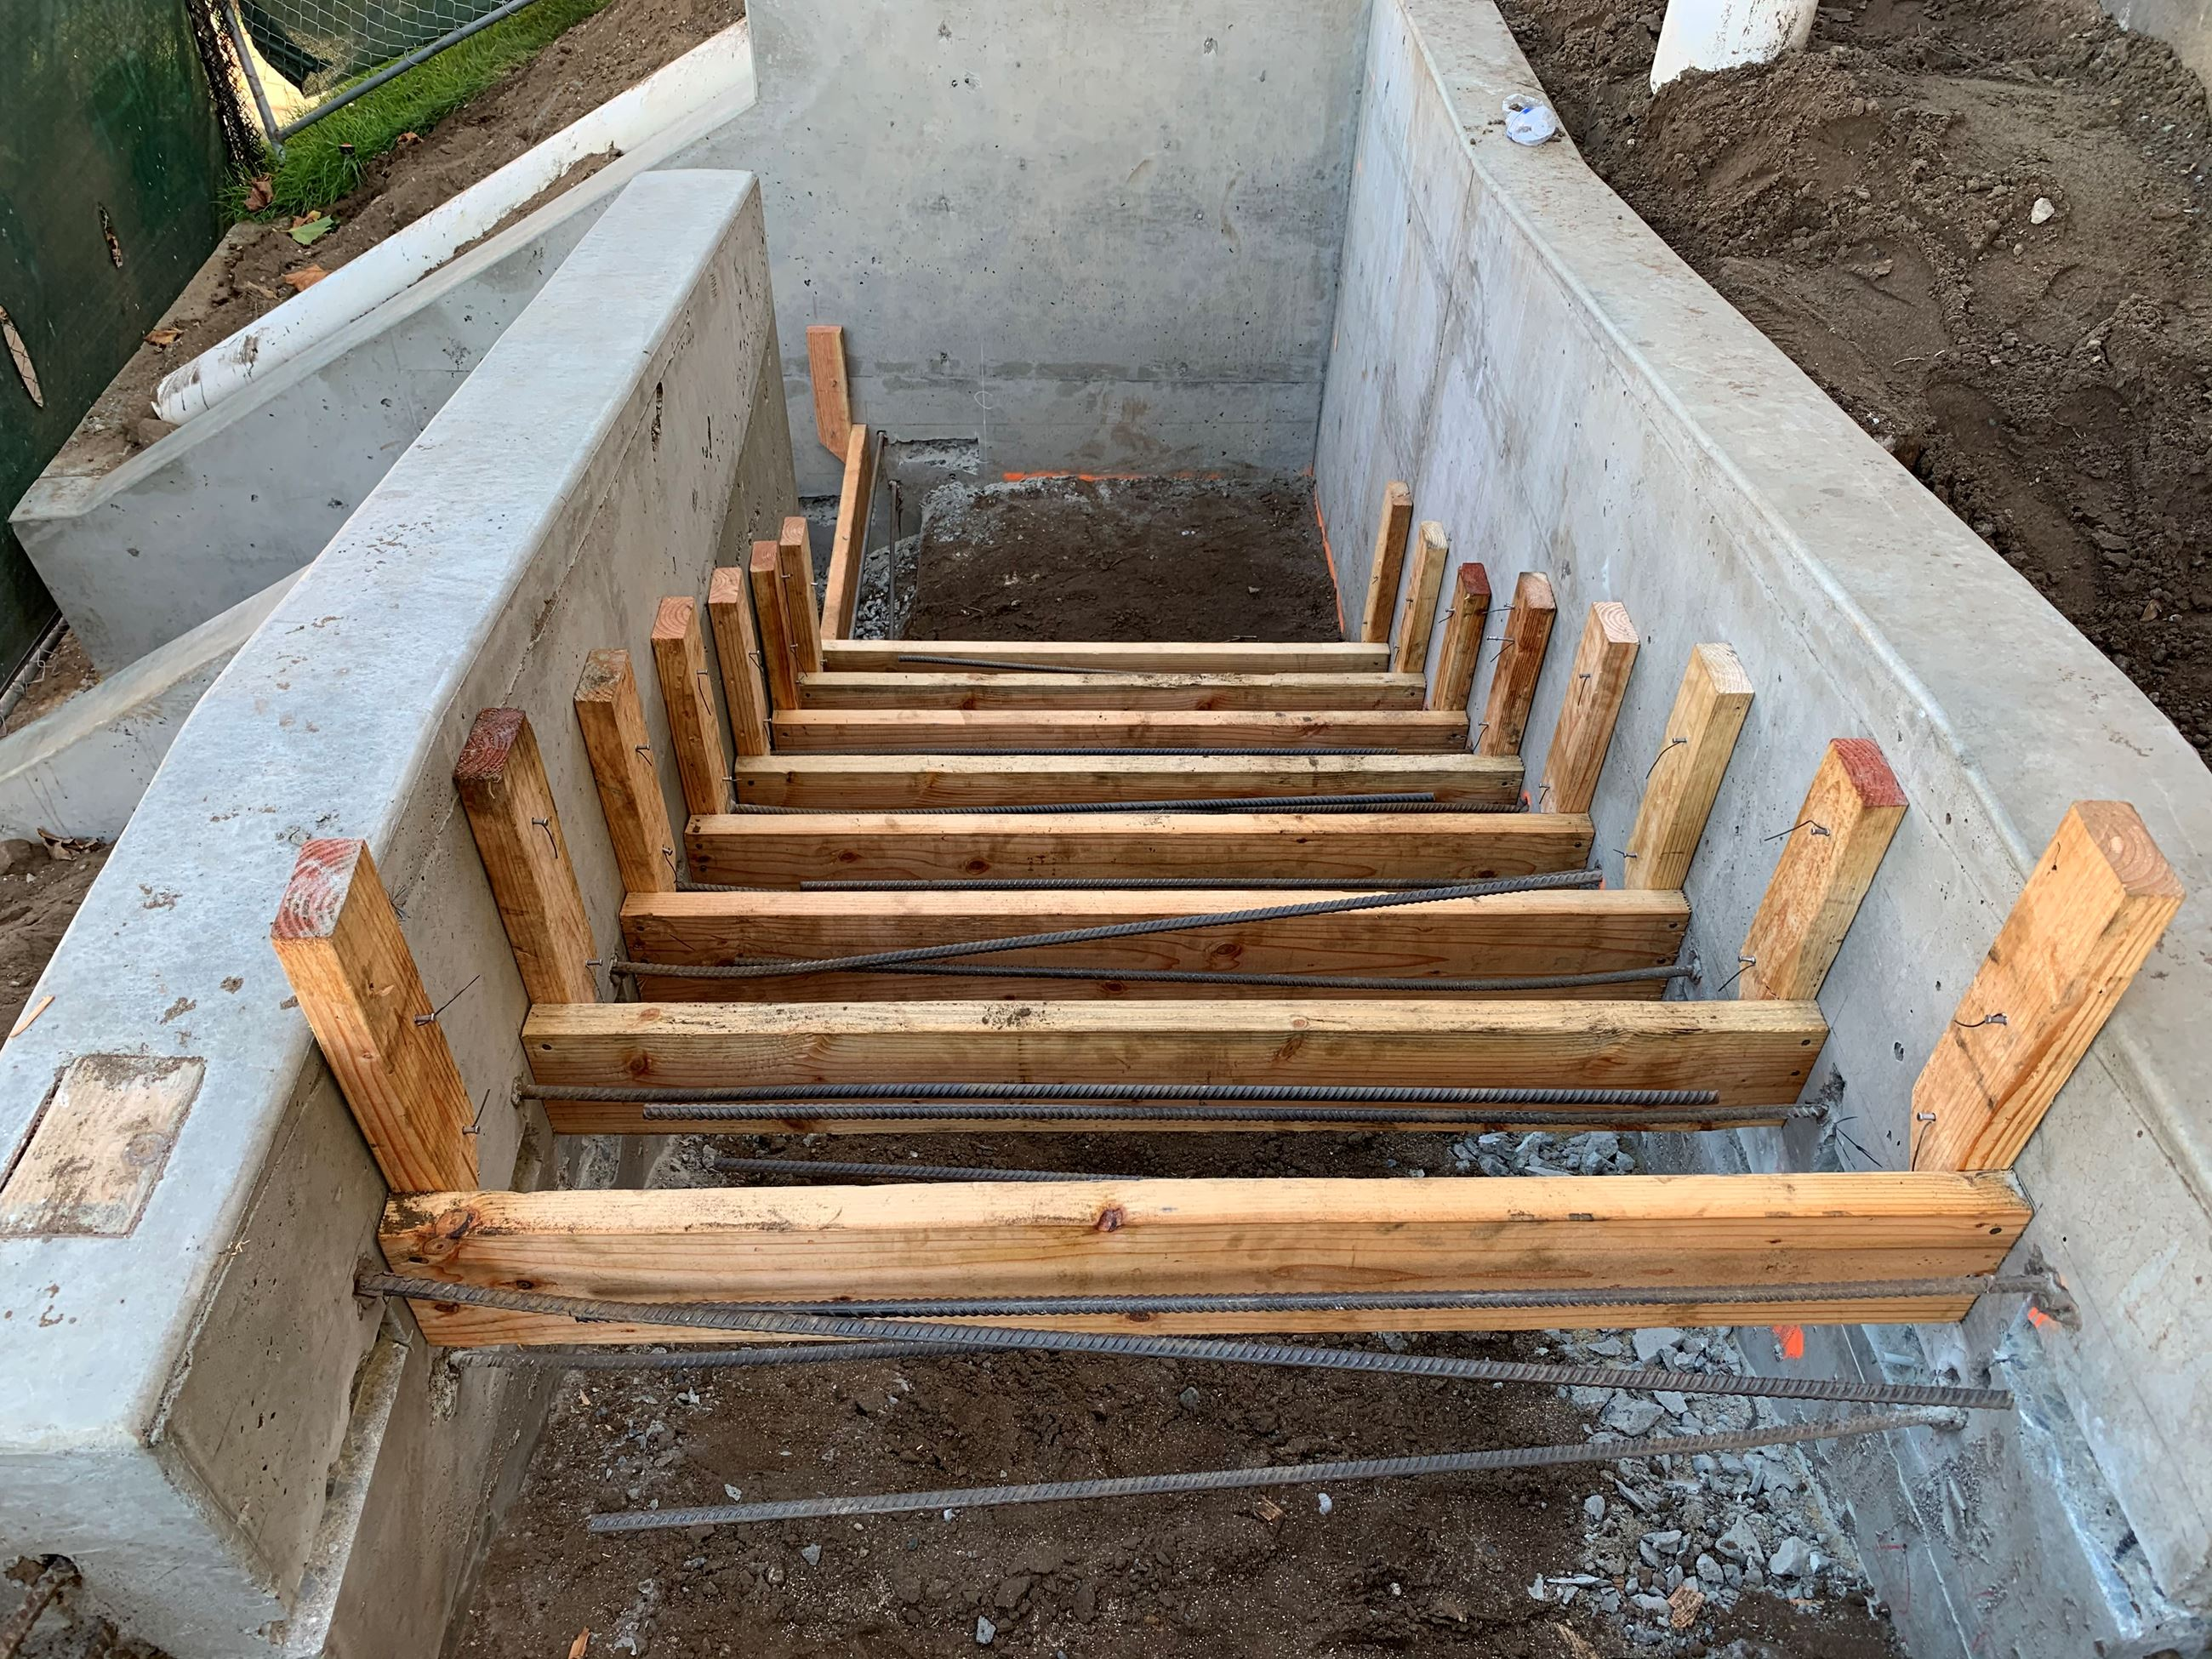 Stair forms made of wood and rebar inside concrete walls.